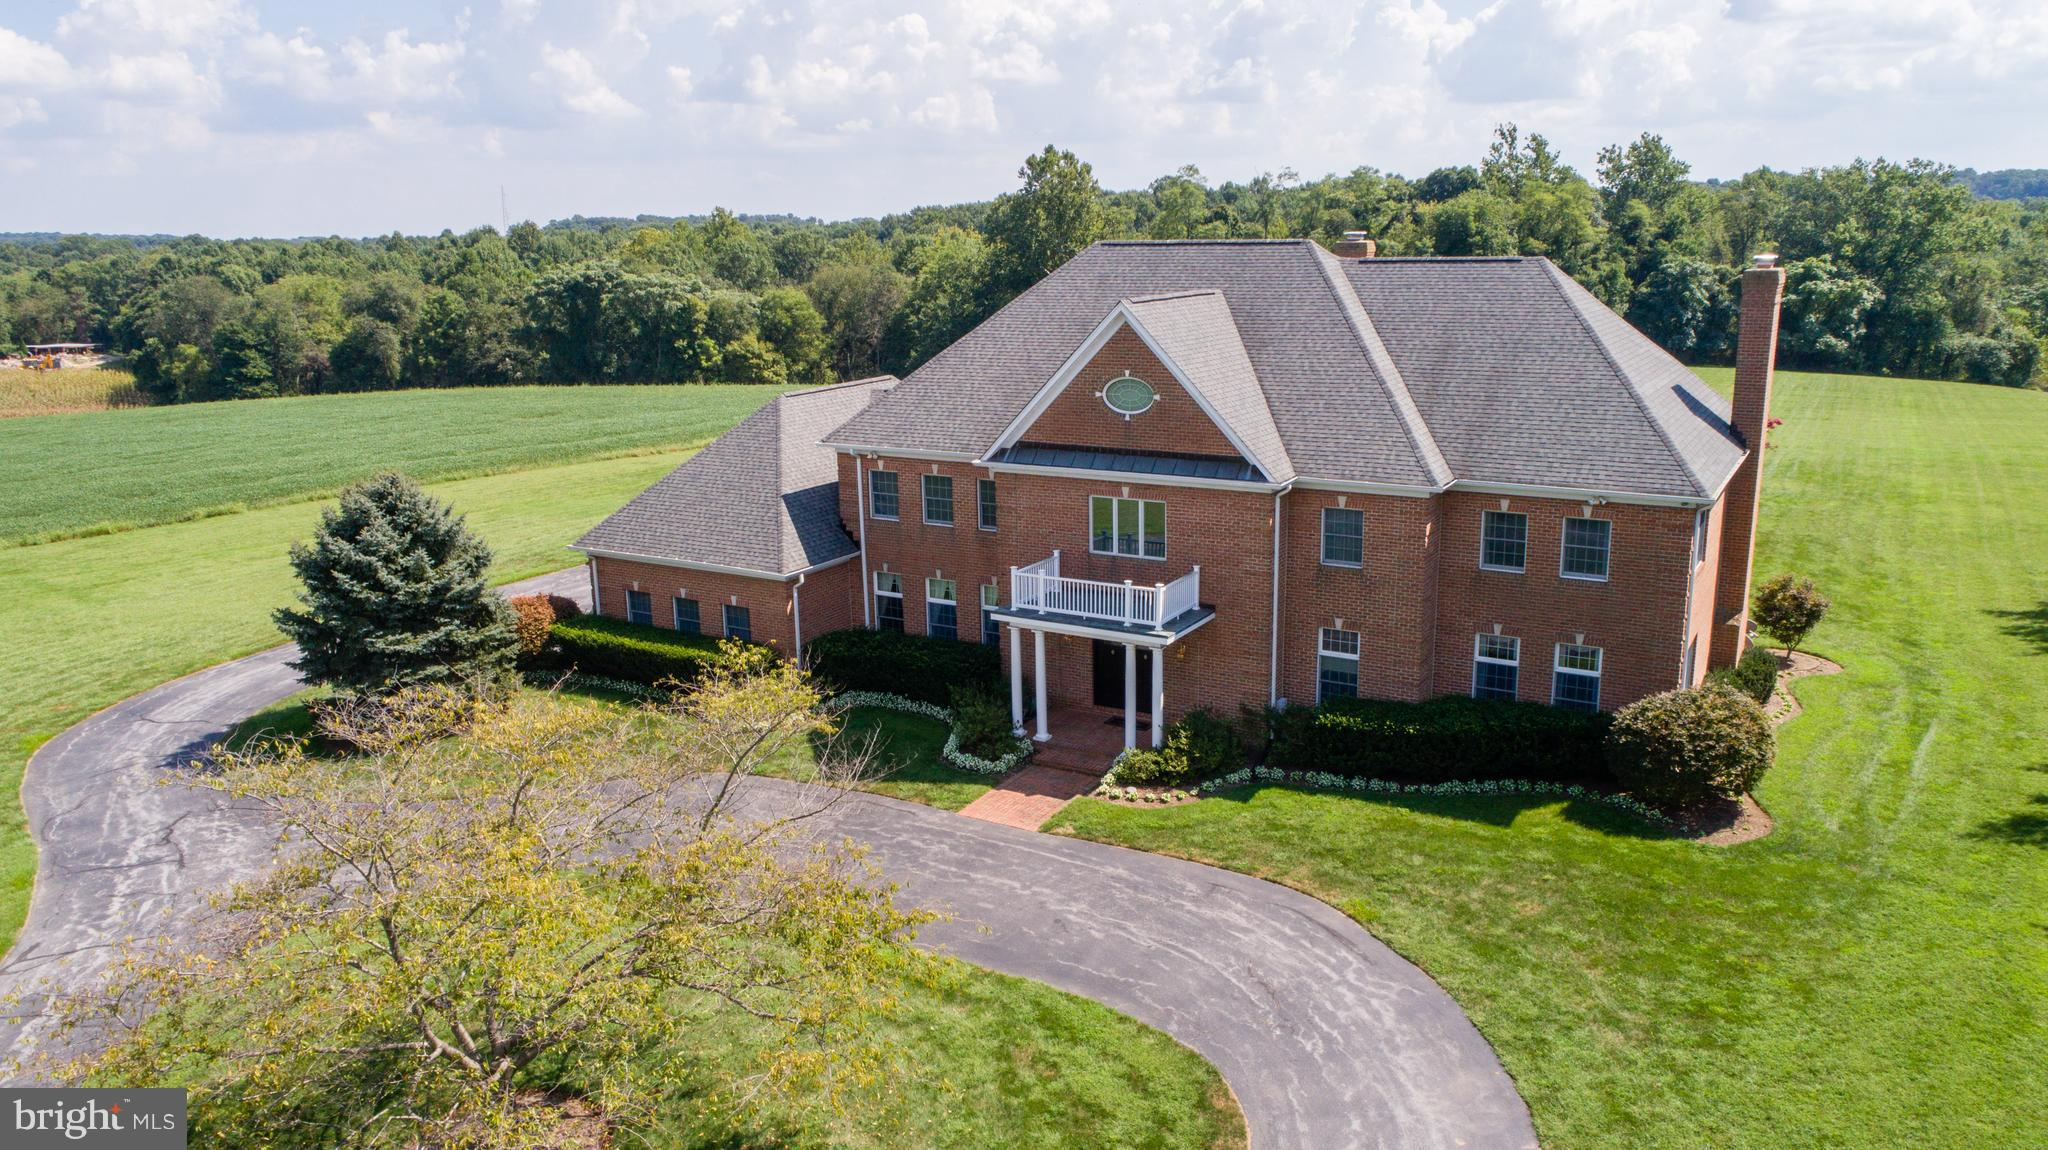 5900 SUNDOWN ROAD, GAITHERSBURG, MD 20882